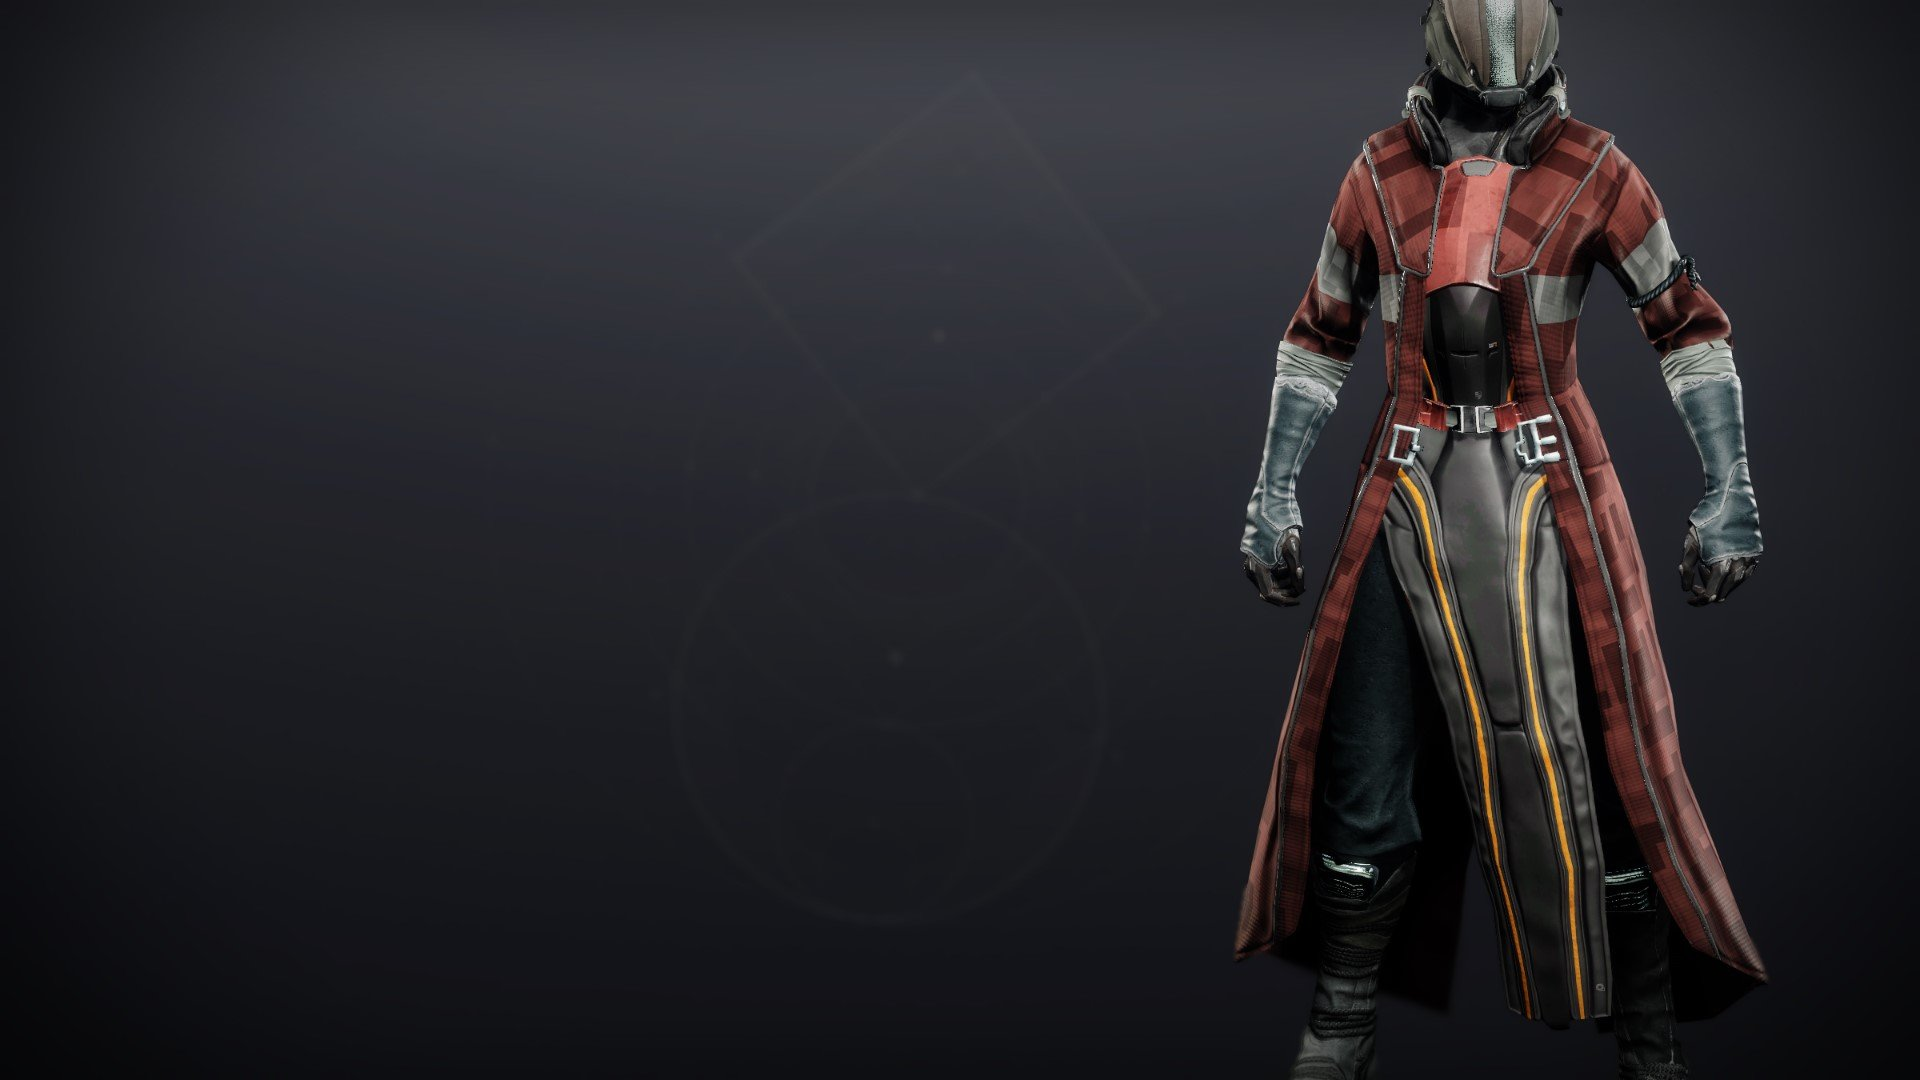 An in-game render of the Exodus Down Robes.